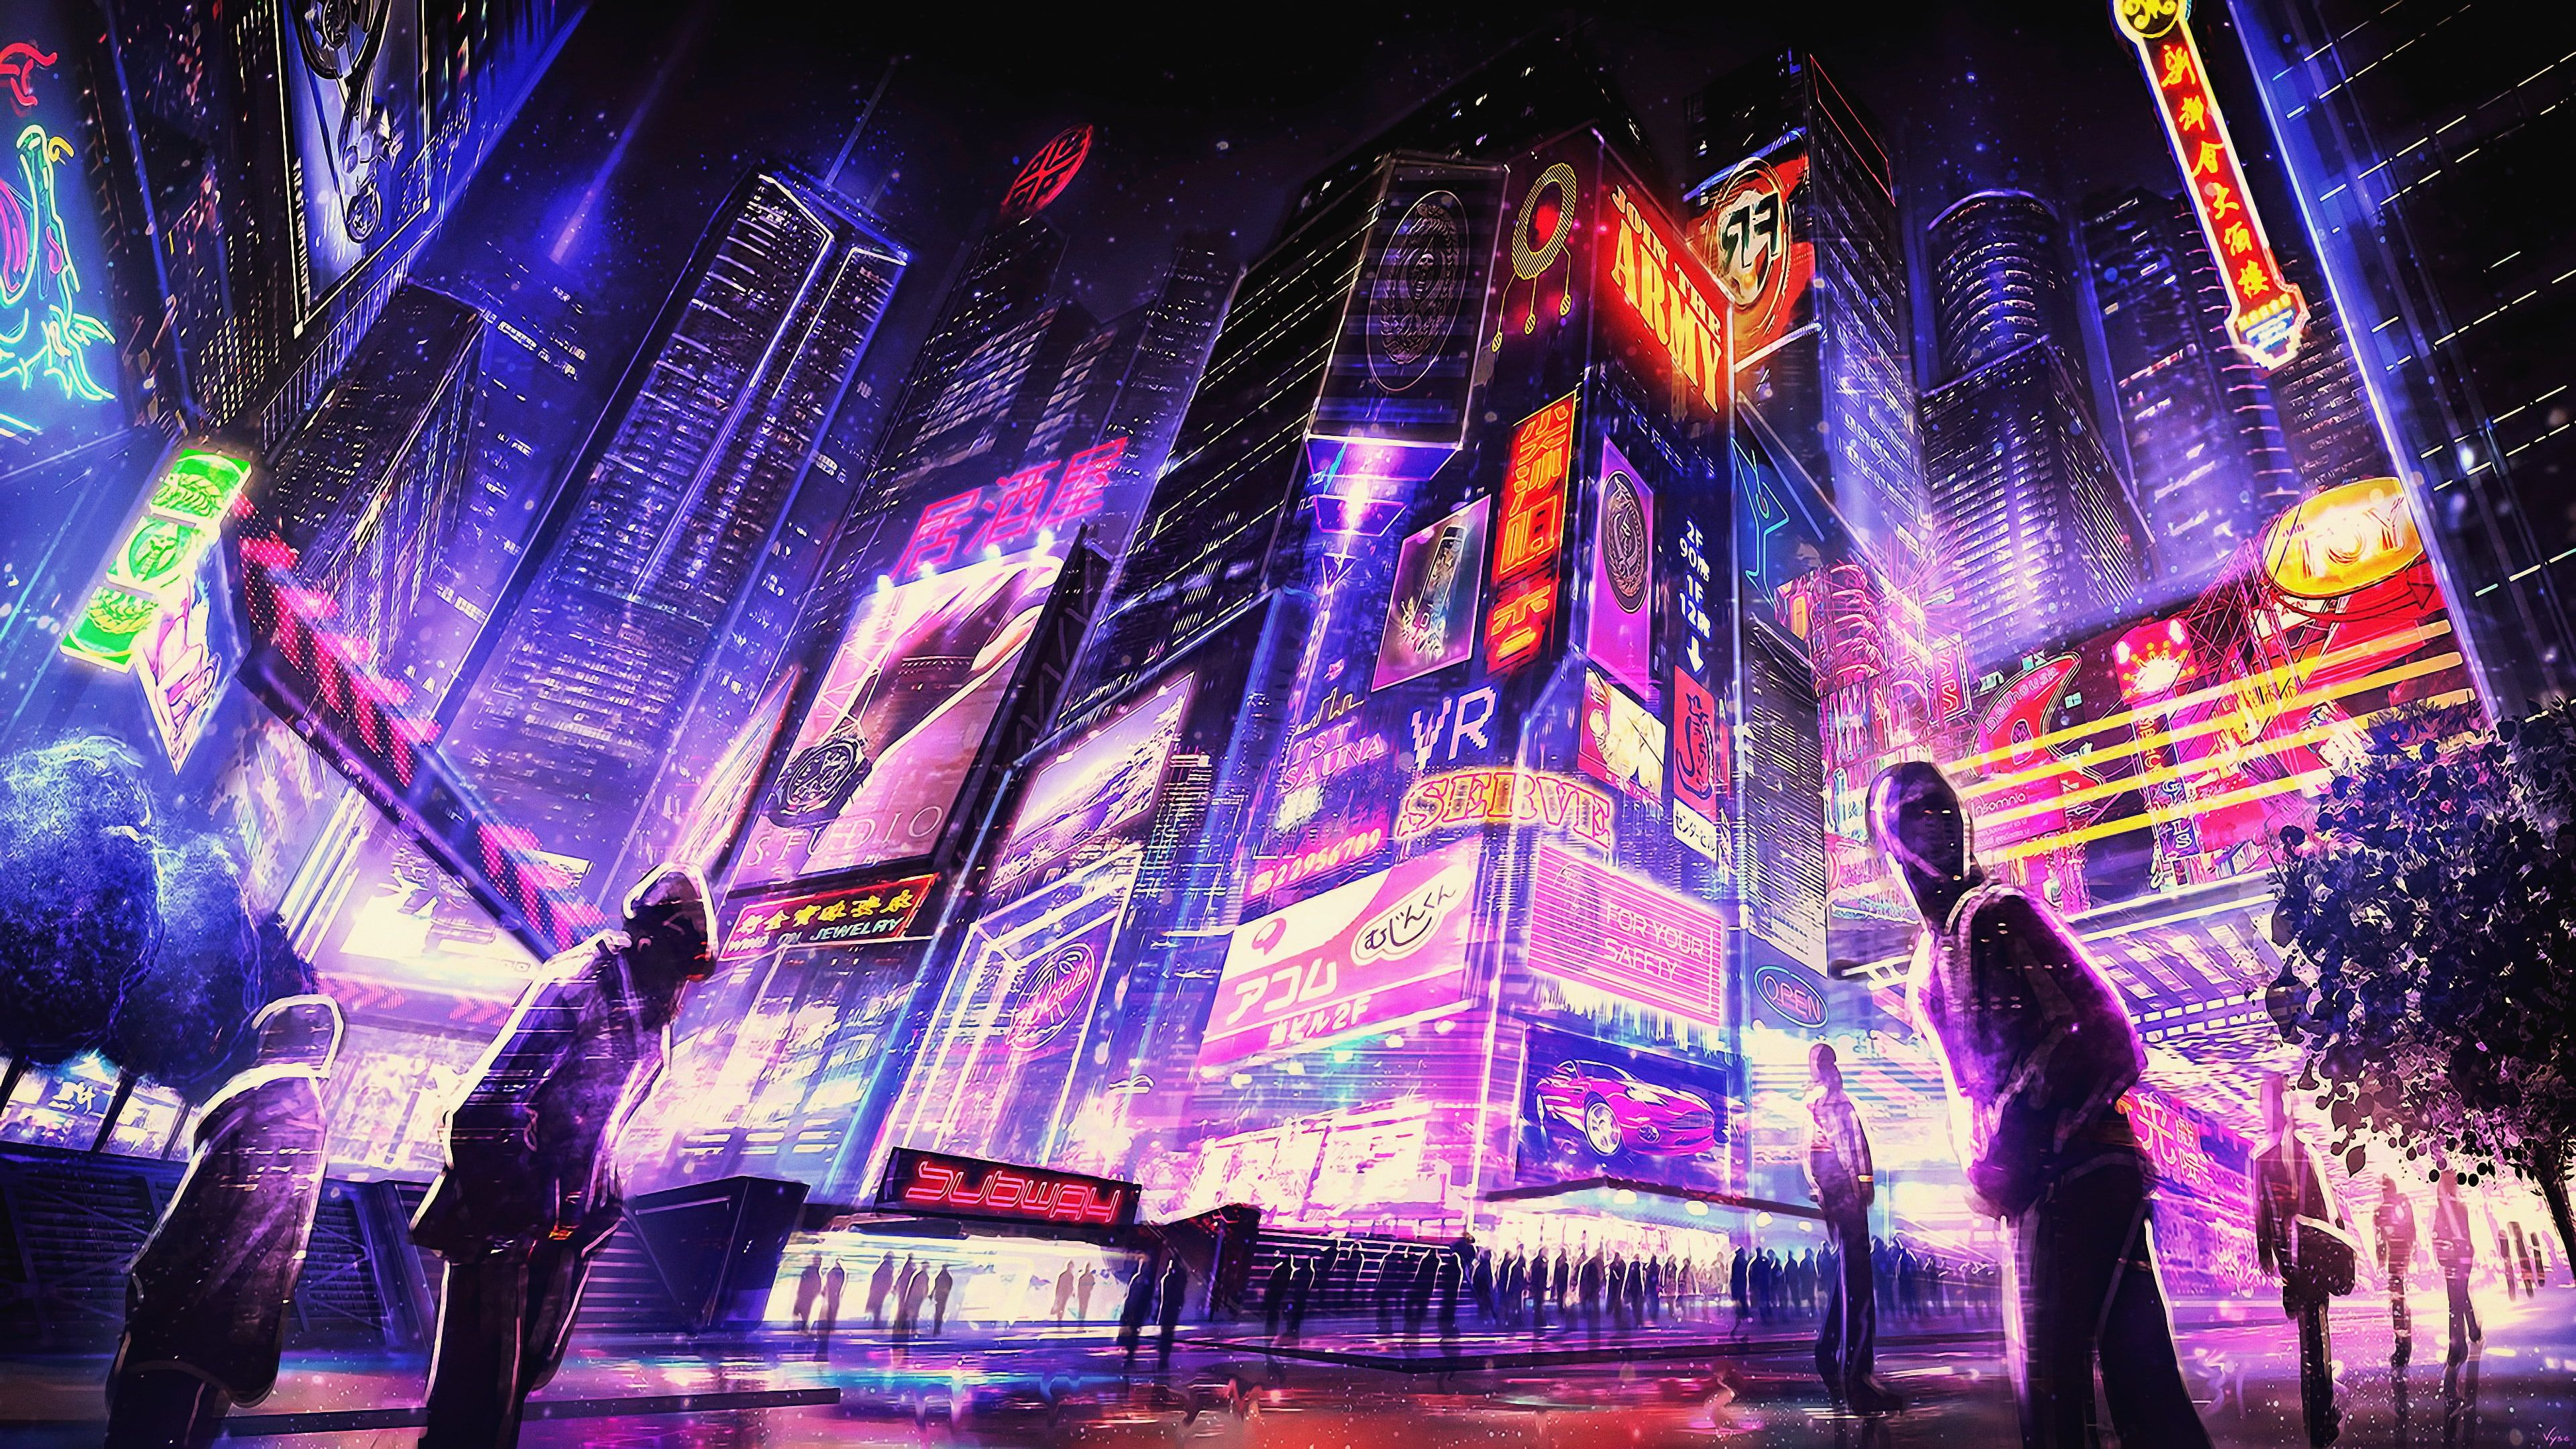 Night Cyberpunk Futuristic City Artwork Digital Art Concept Art Fantasy Art Futuristic City 4k Wallpaper Hdwal Cyberpunk City Futuristic City Cyberpunk